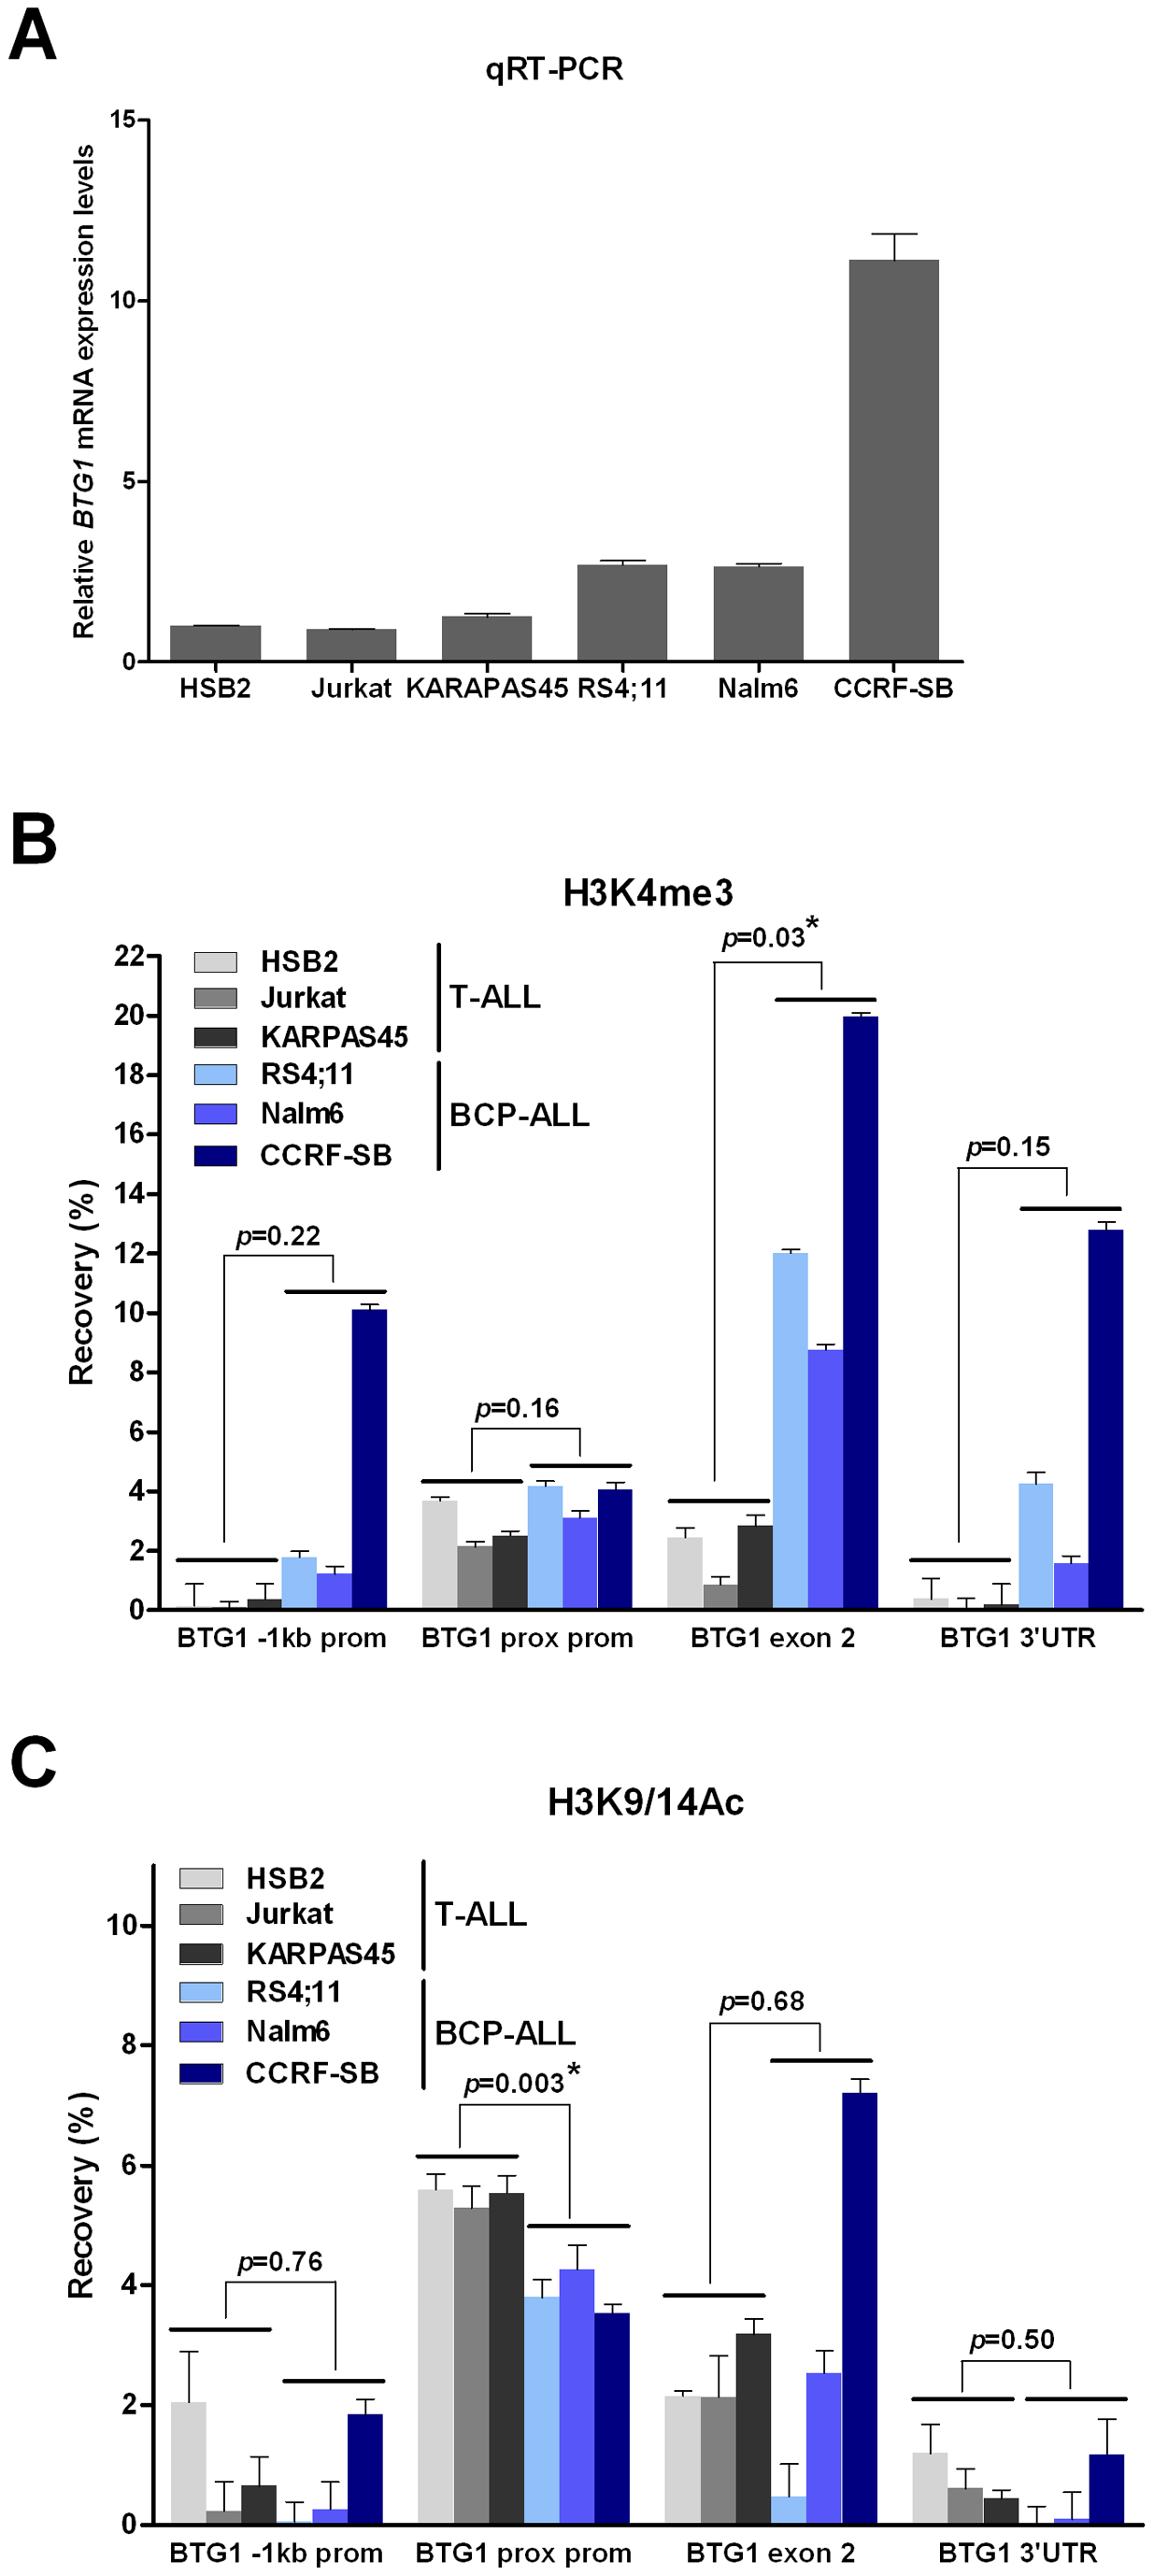 Increased levels of H3K4me3 at the <i>BTG1</i> locus in BCP-ALL versus T-ALL cell lines.